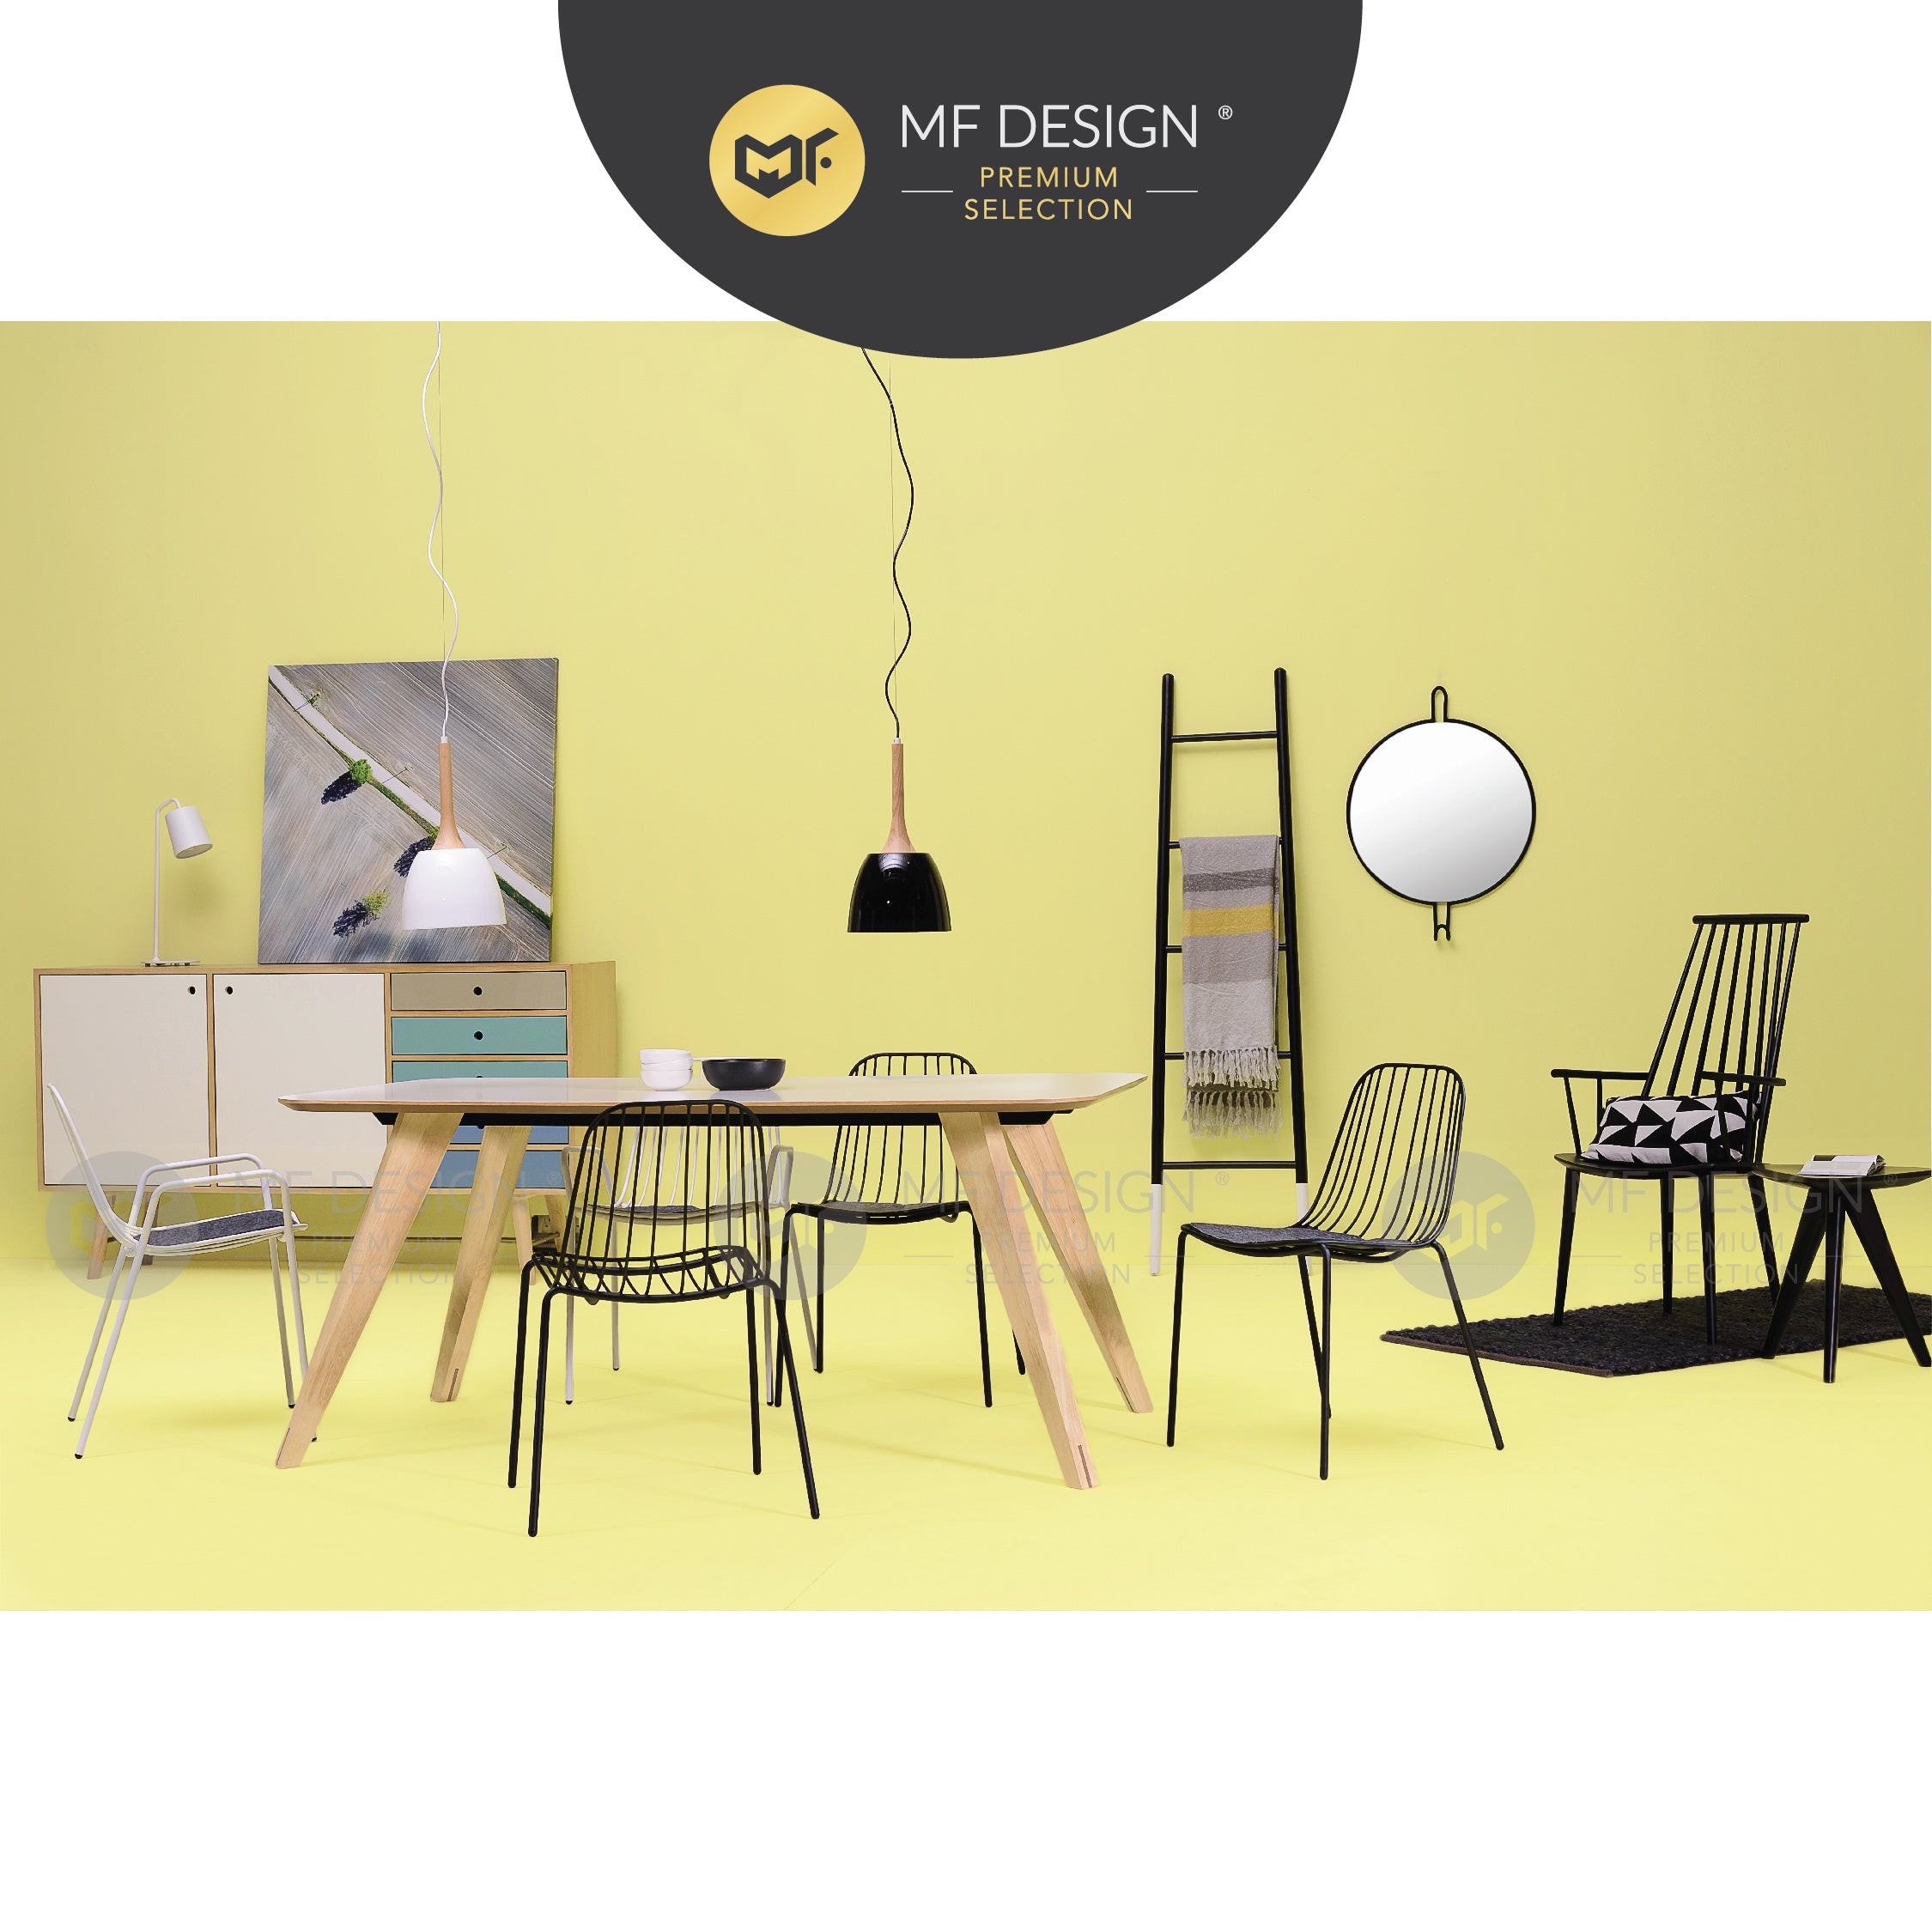 MFD Premium Naomi Dining Chair / Wooden Chair / Solid Rubber Wood / Kerusi Makan Kayu Getah / Living Room / Scandinavian